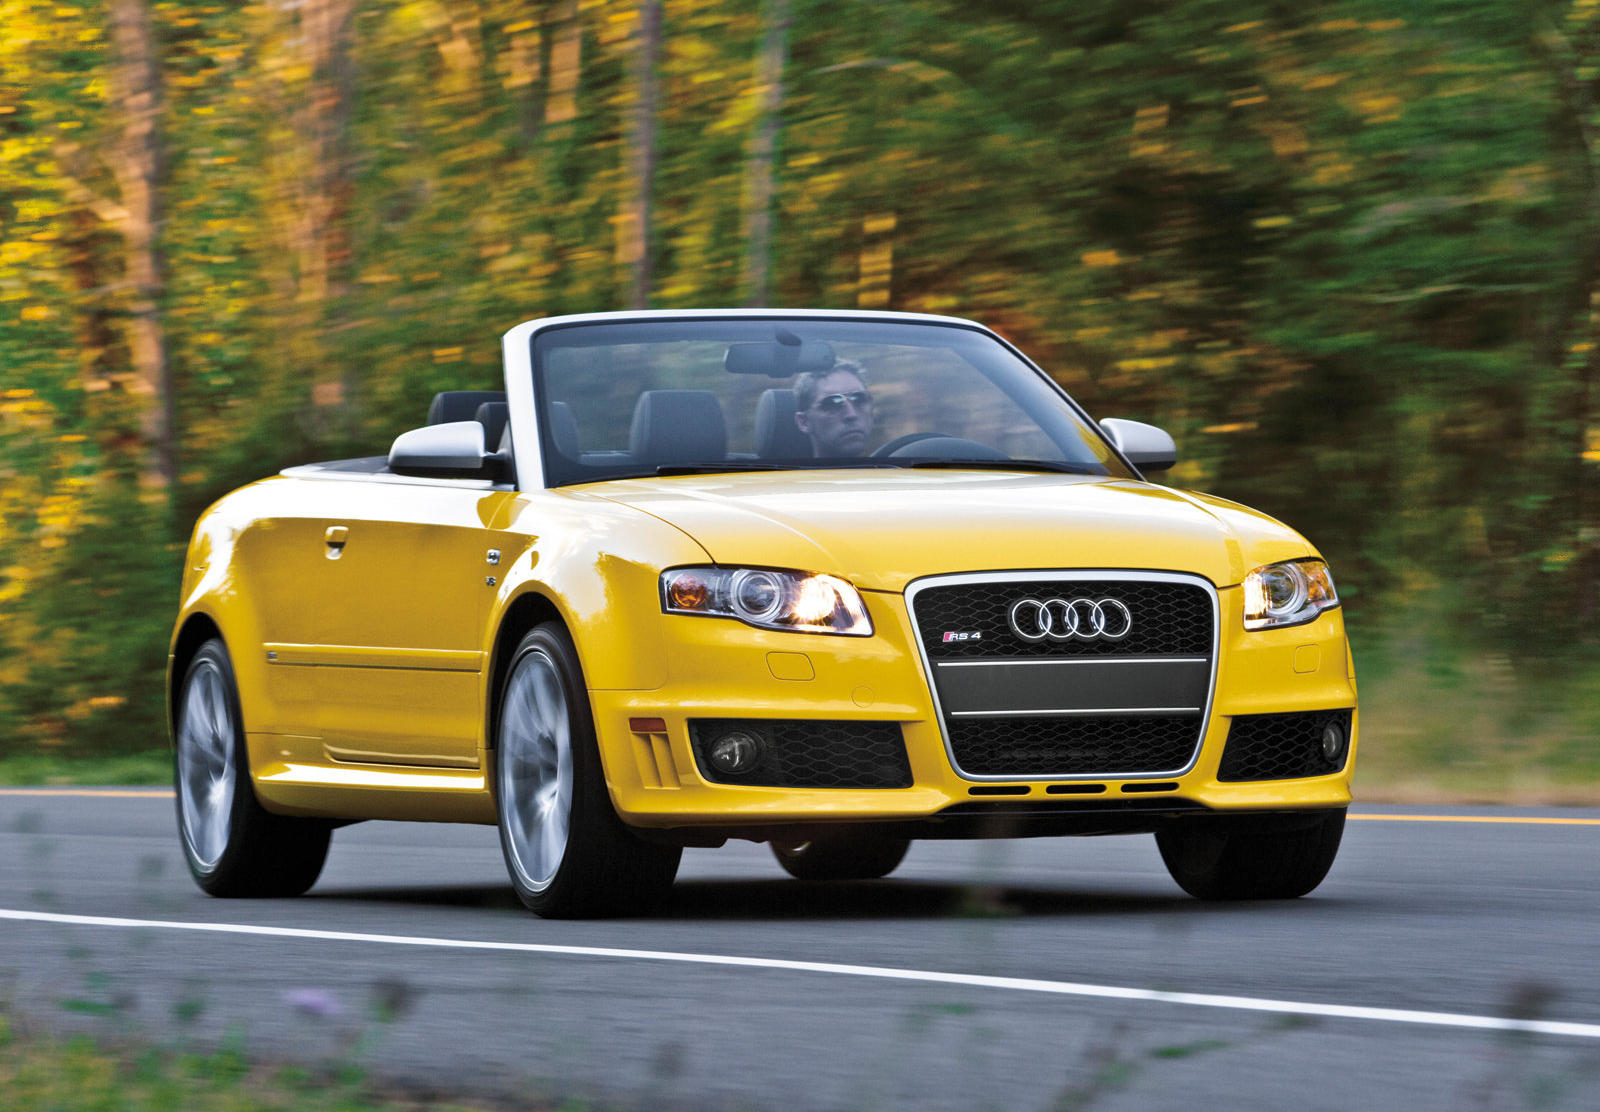 2008 Audi Rs4 Convertible 128662 Review Trims Specs And Price 128276 Carbuzz